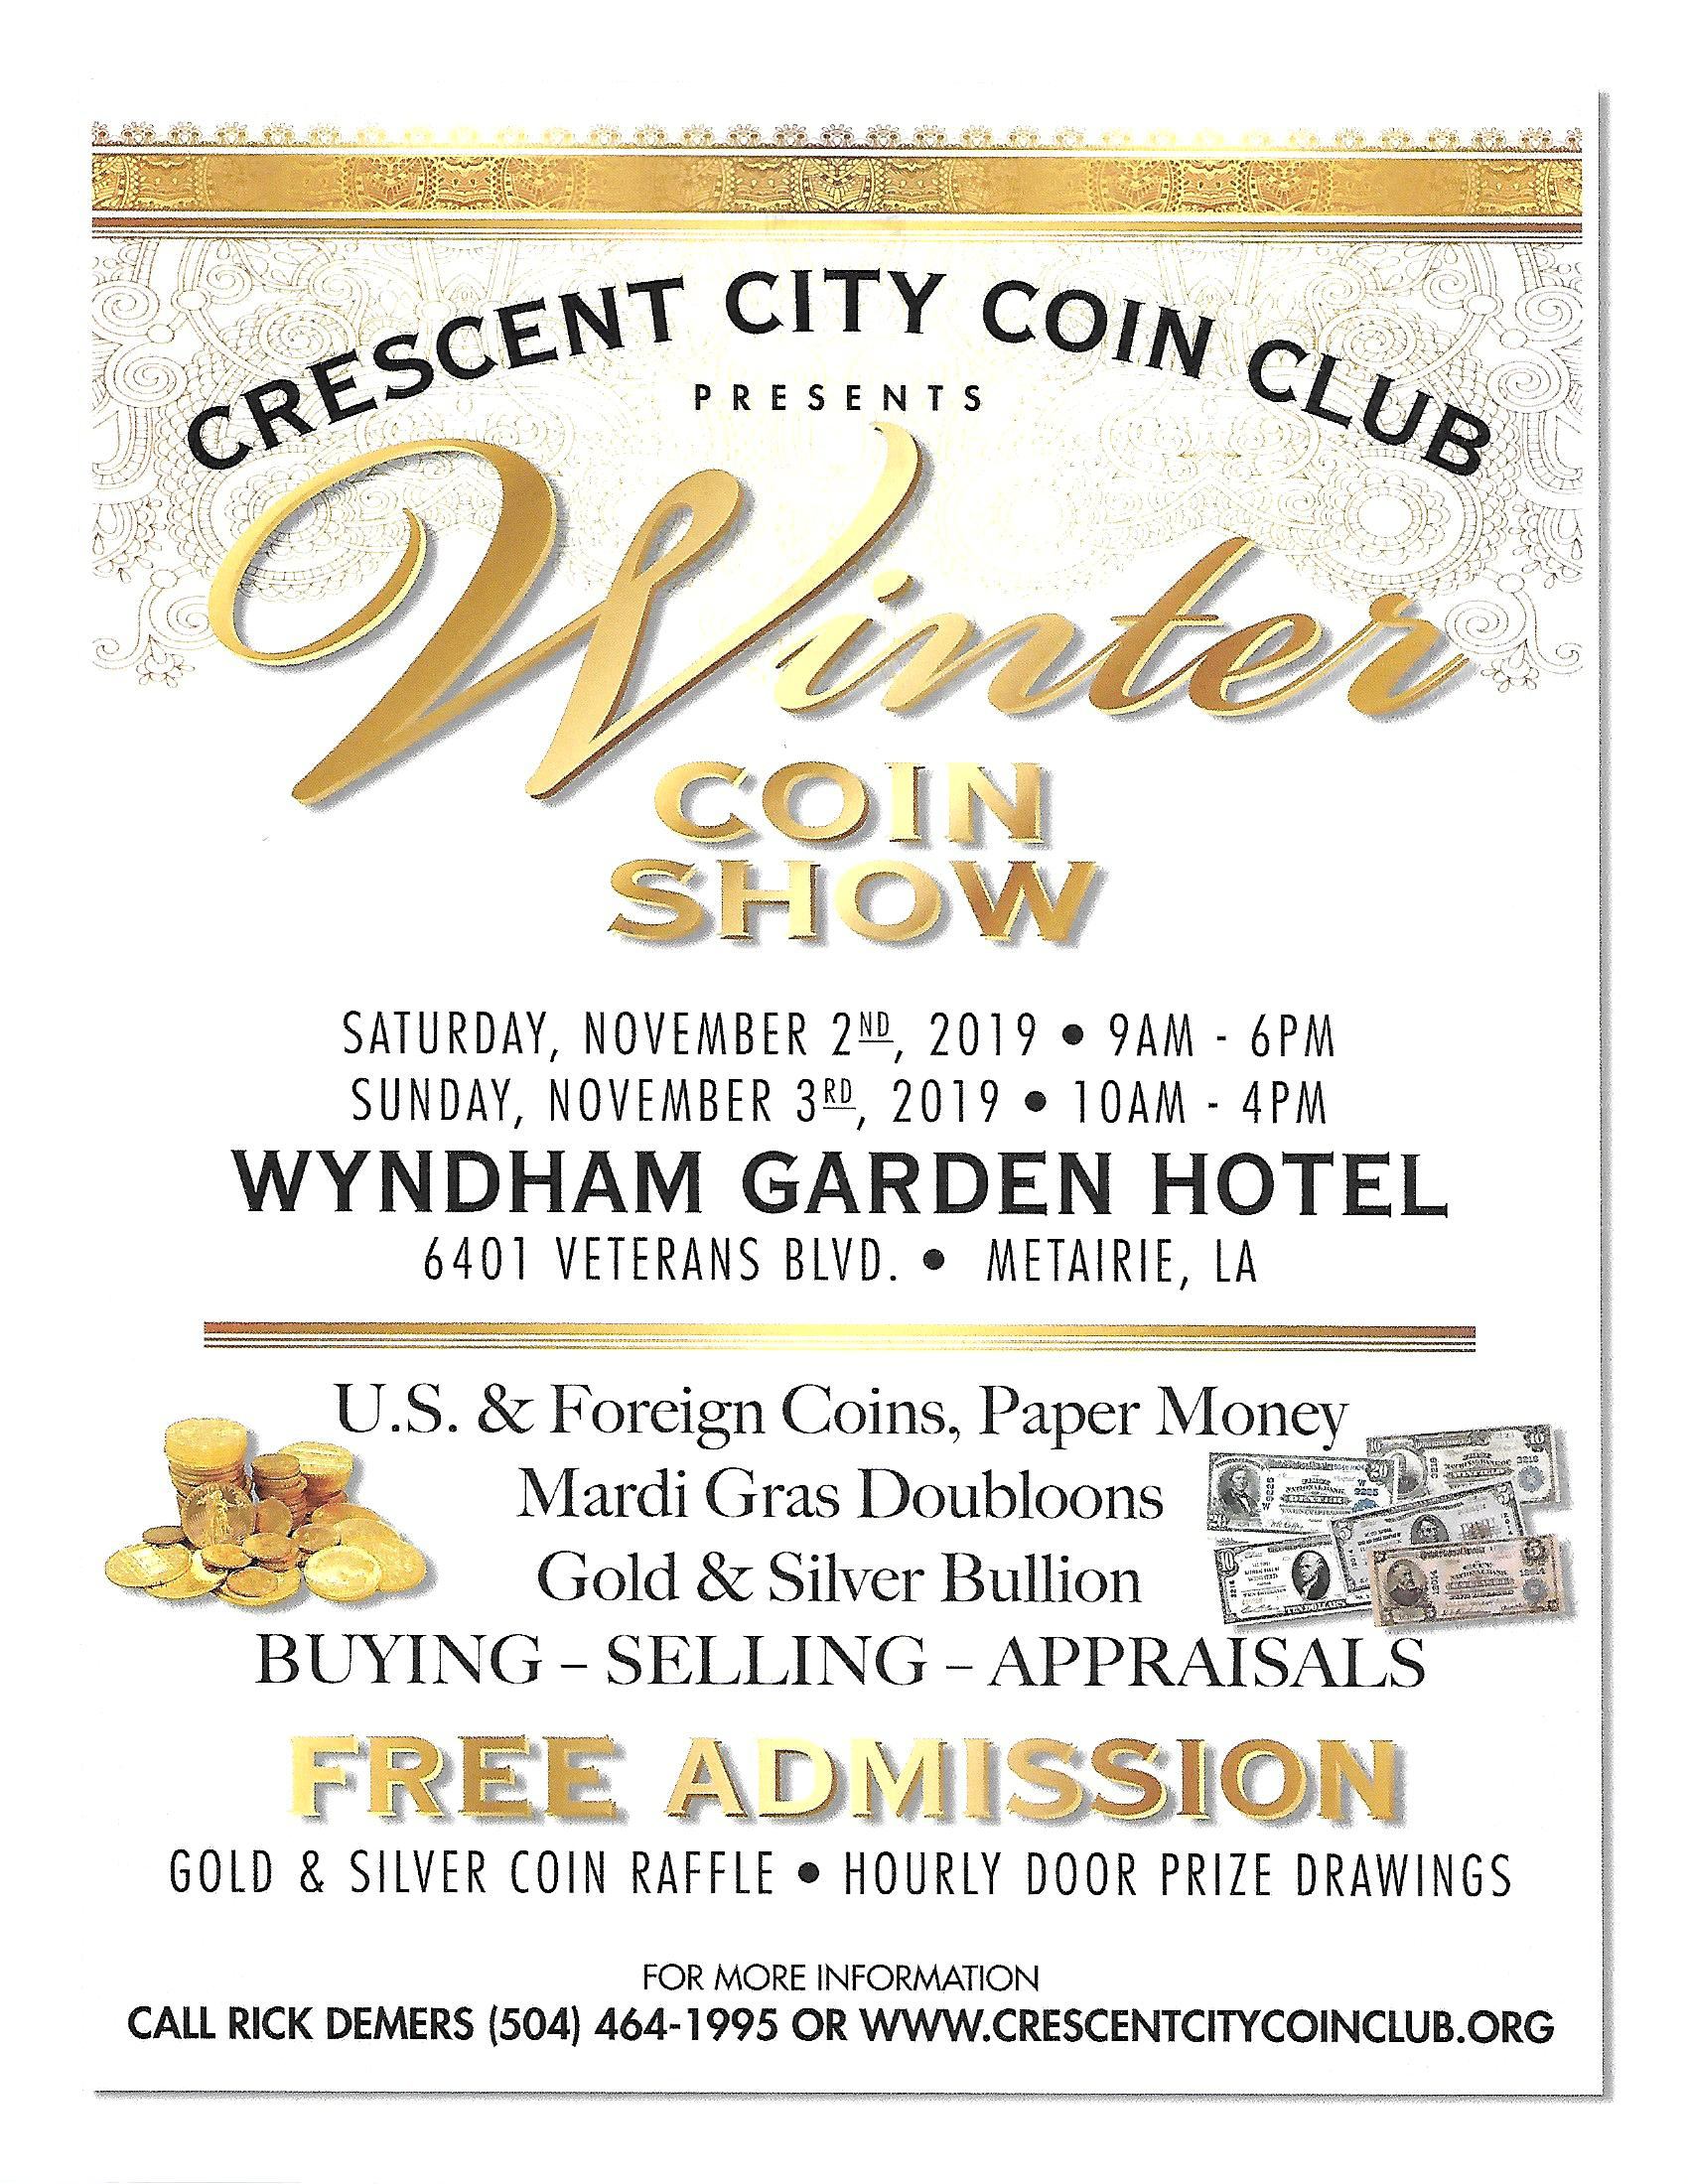 Crescent City Coin Club Winter Coin Show